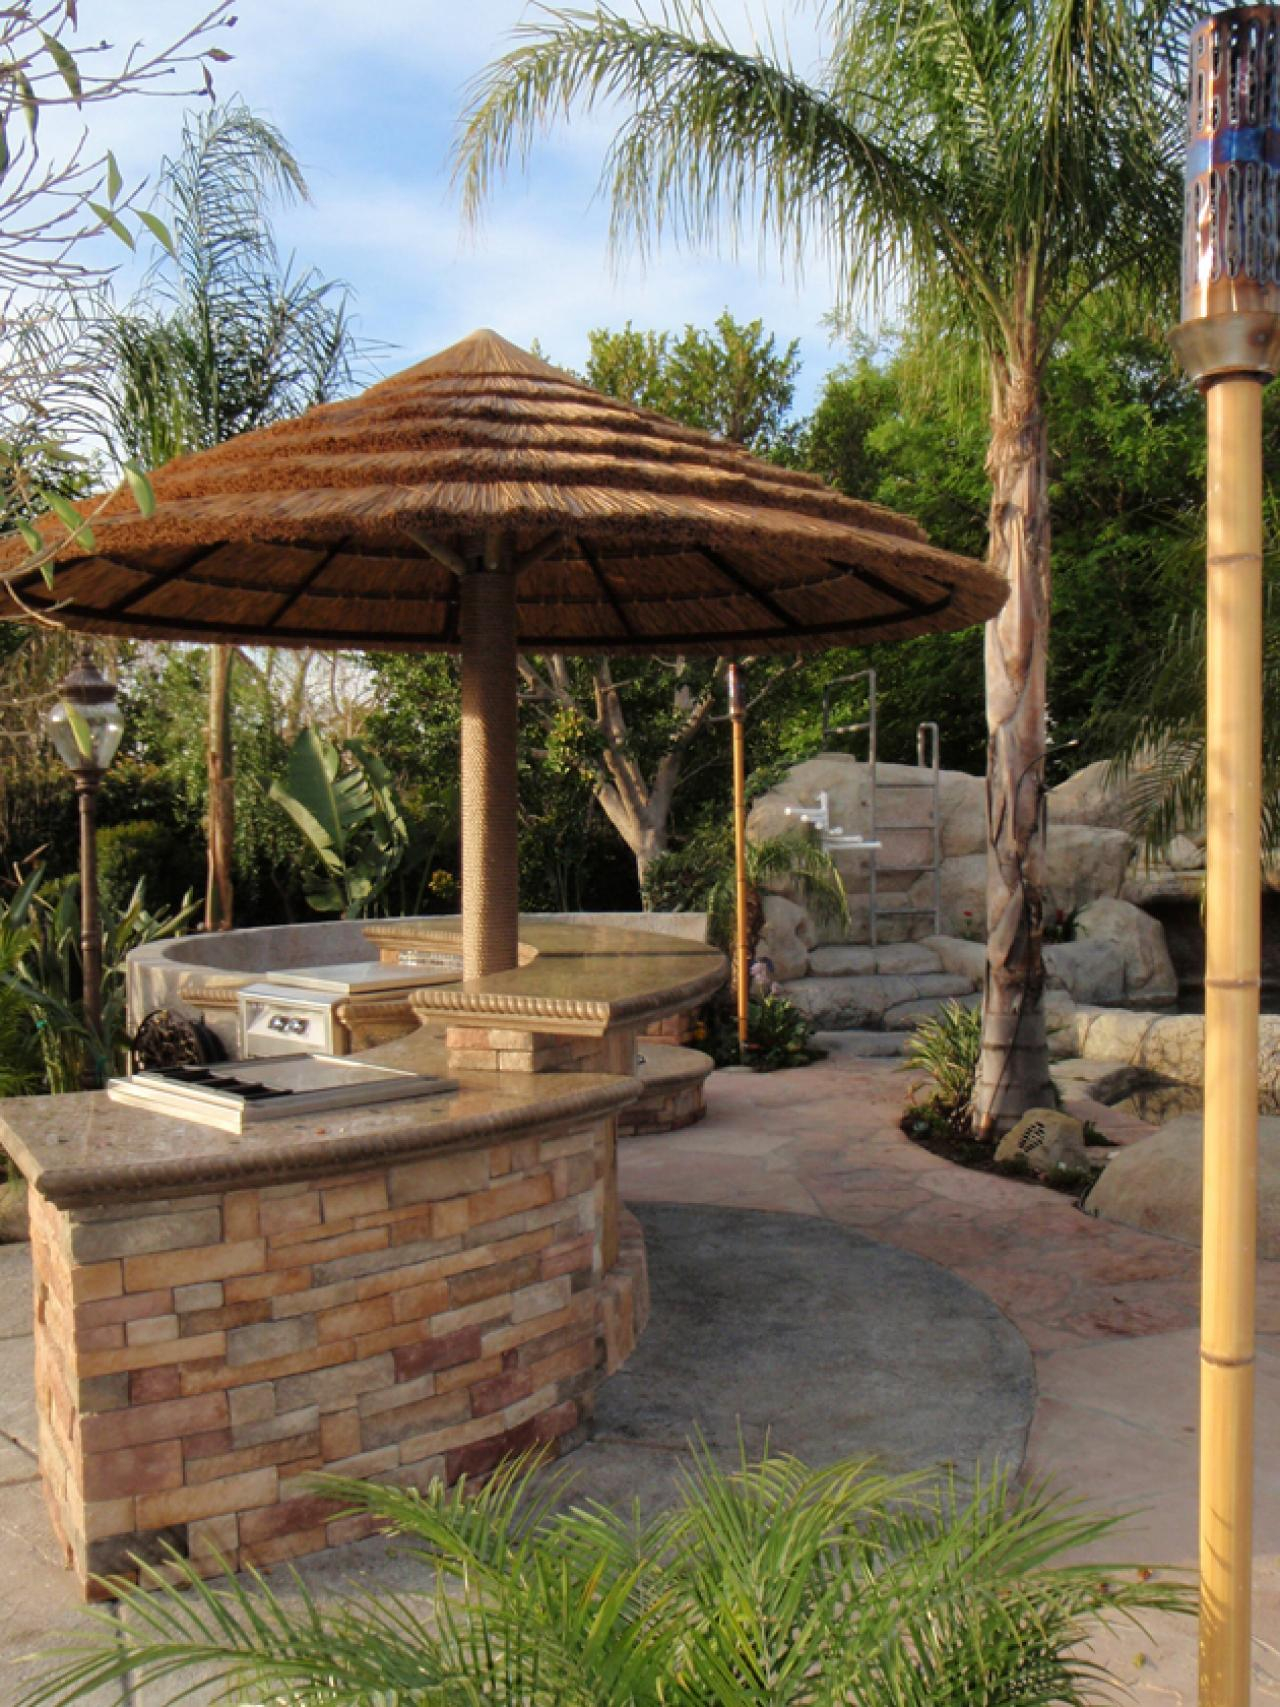 Backyard Tiki Hut Ideas Homideal regarding 11 Some of the Coolest Ways How to Build Backyard Tiki Hut Ideas